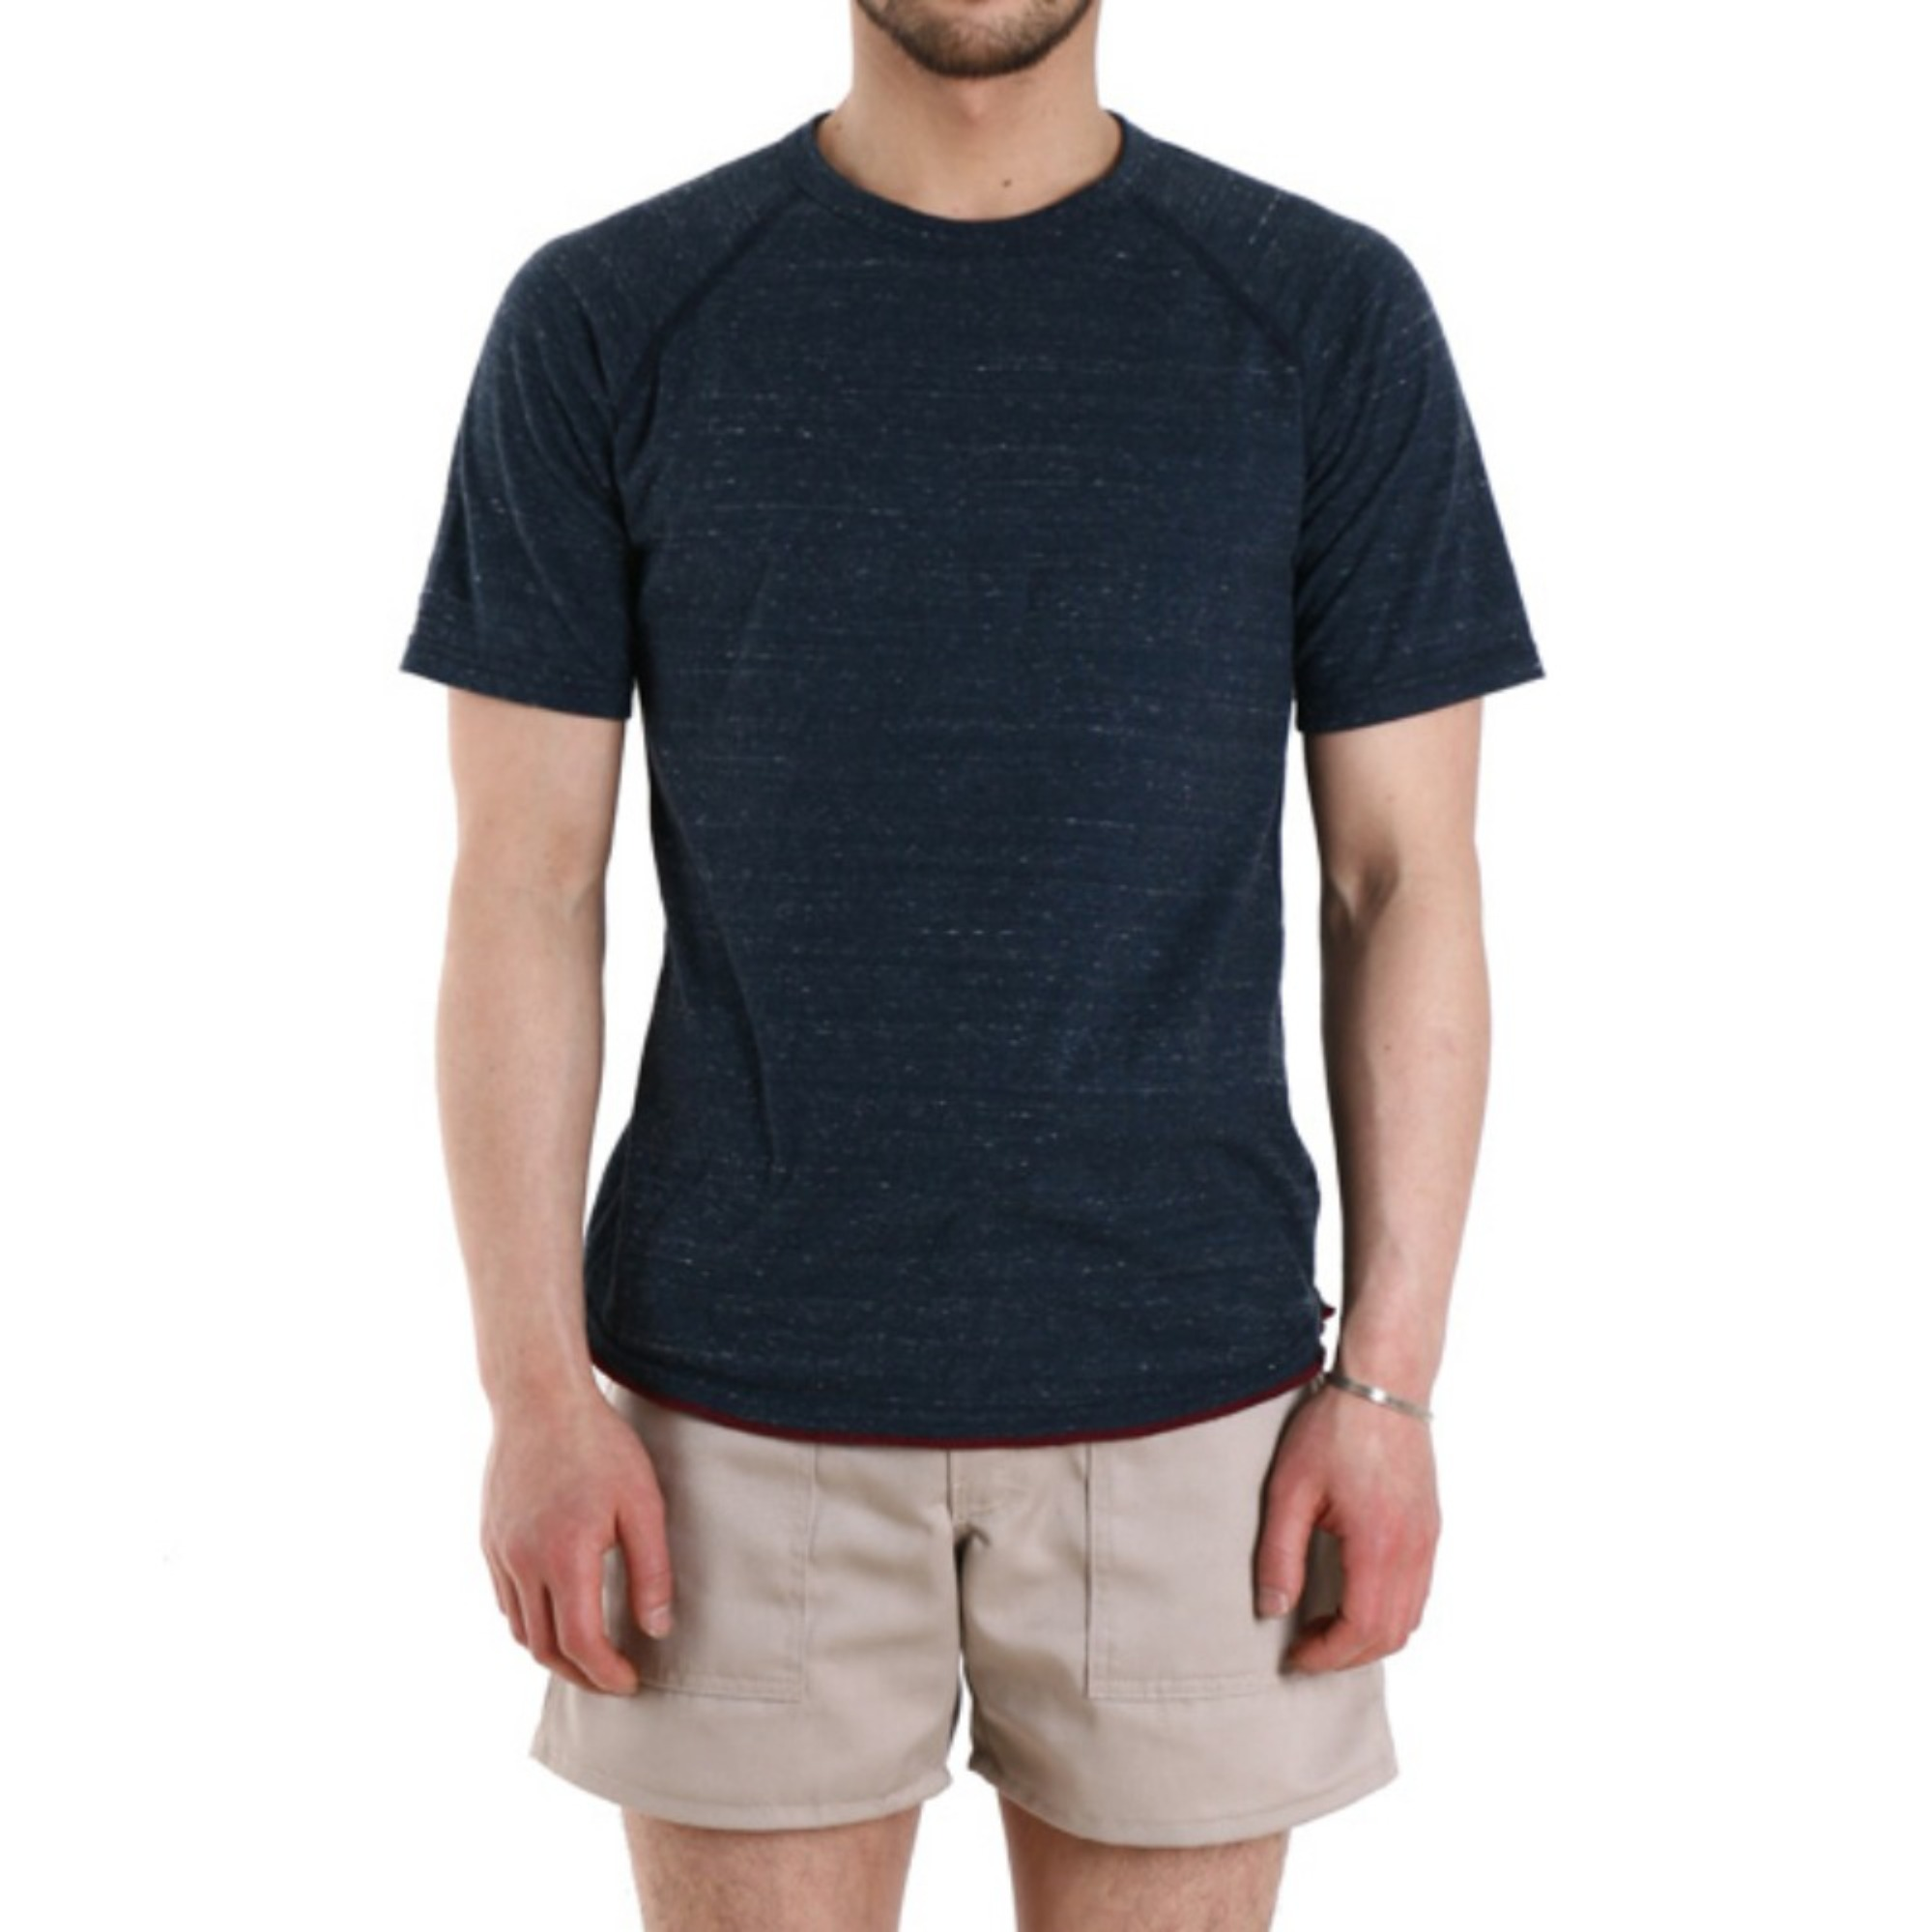 "REIGNING CHAMP Crewneck S/S Heather Jersey Raglan T-Shirt RC-1031 ""H.Navy"""